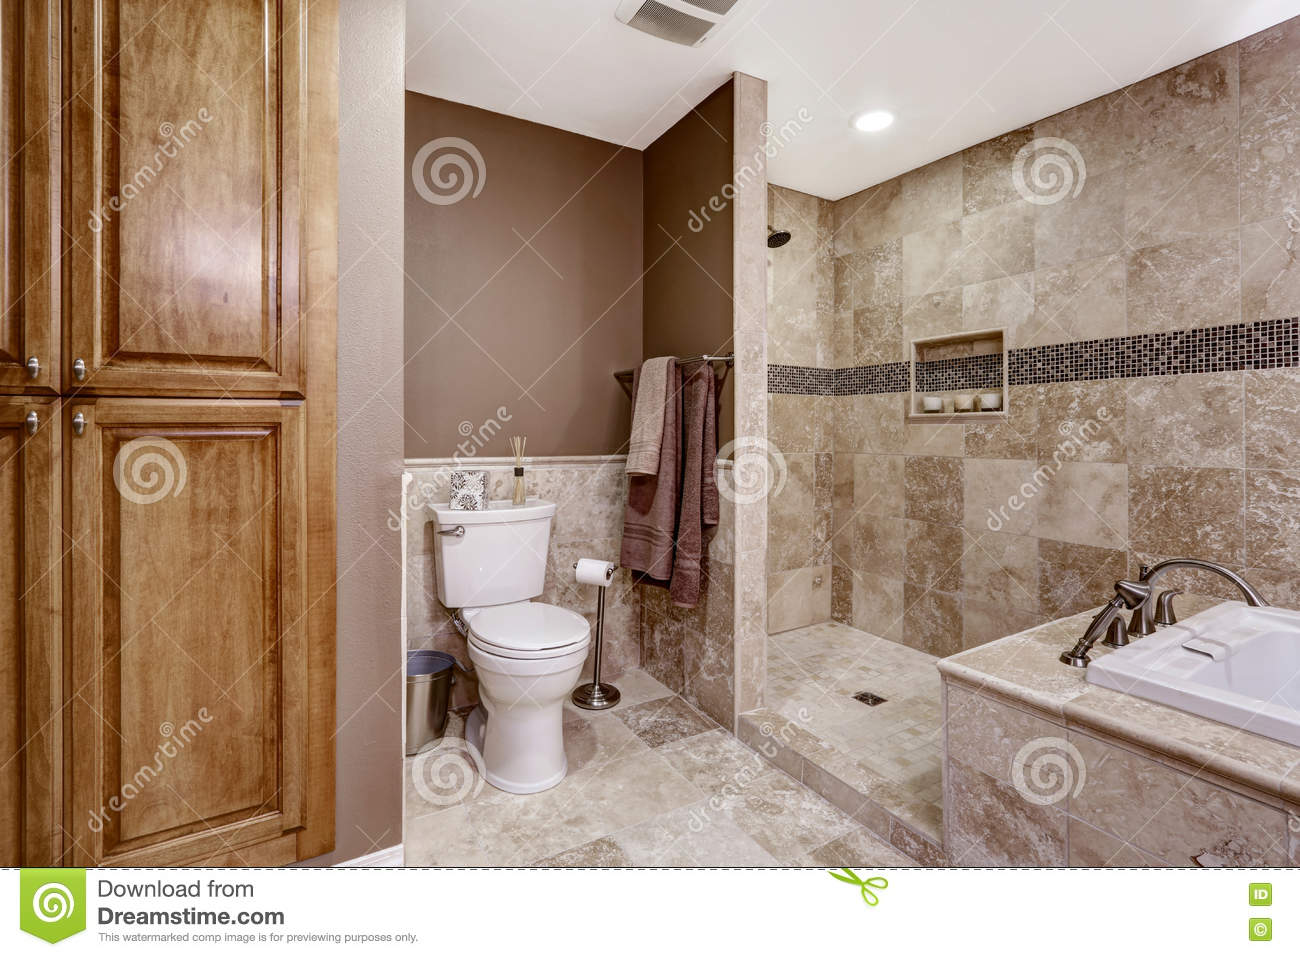 Empty Bathroom Interior. Light Brown Tile, Bath Tub And Toilet Stock ...